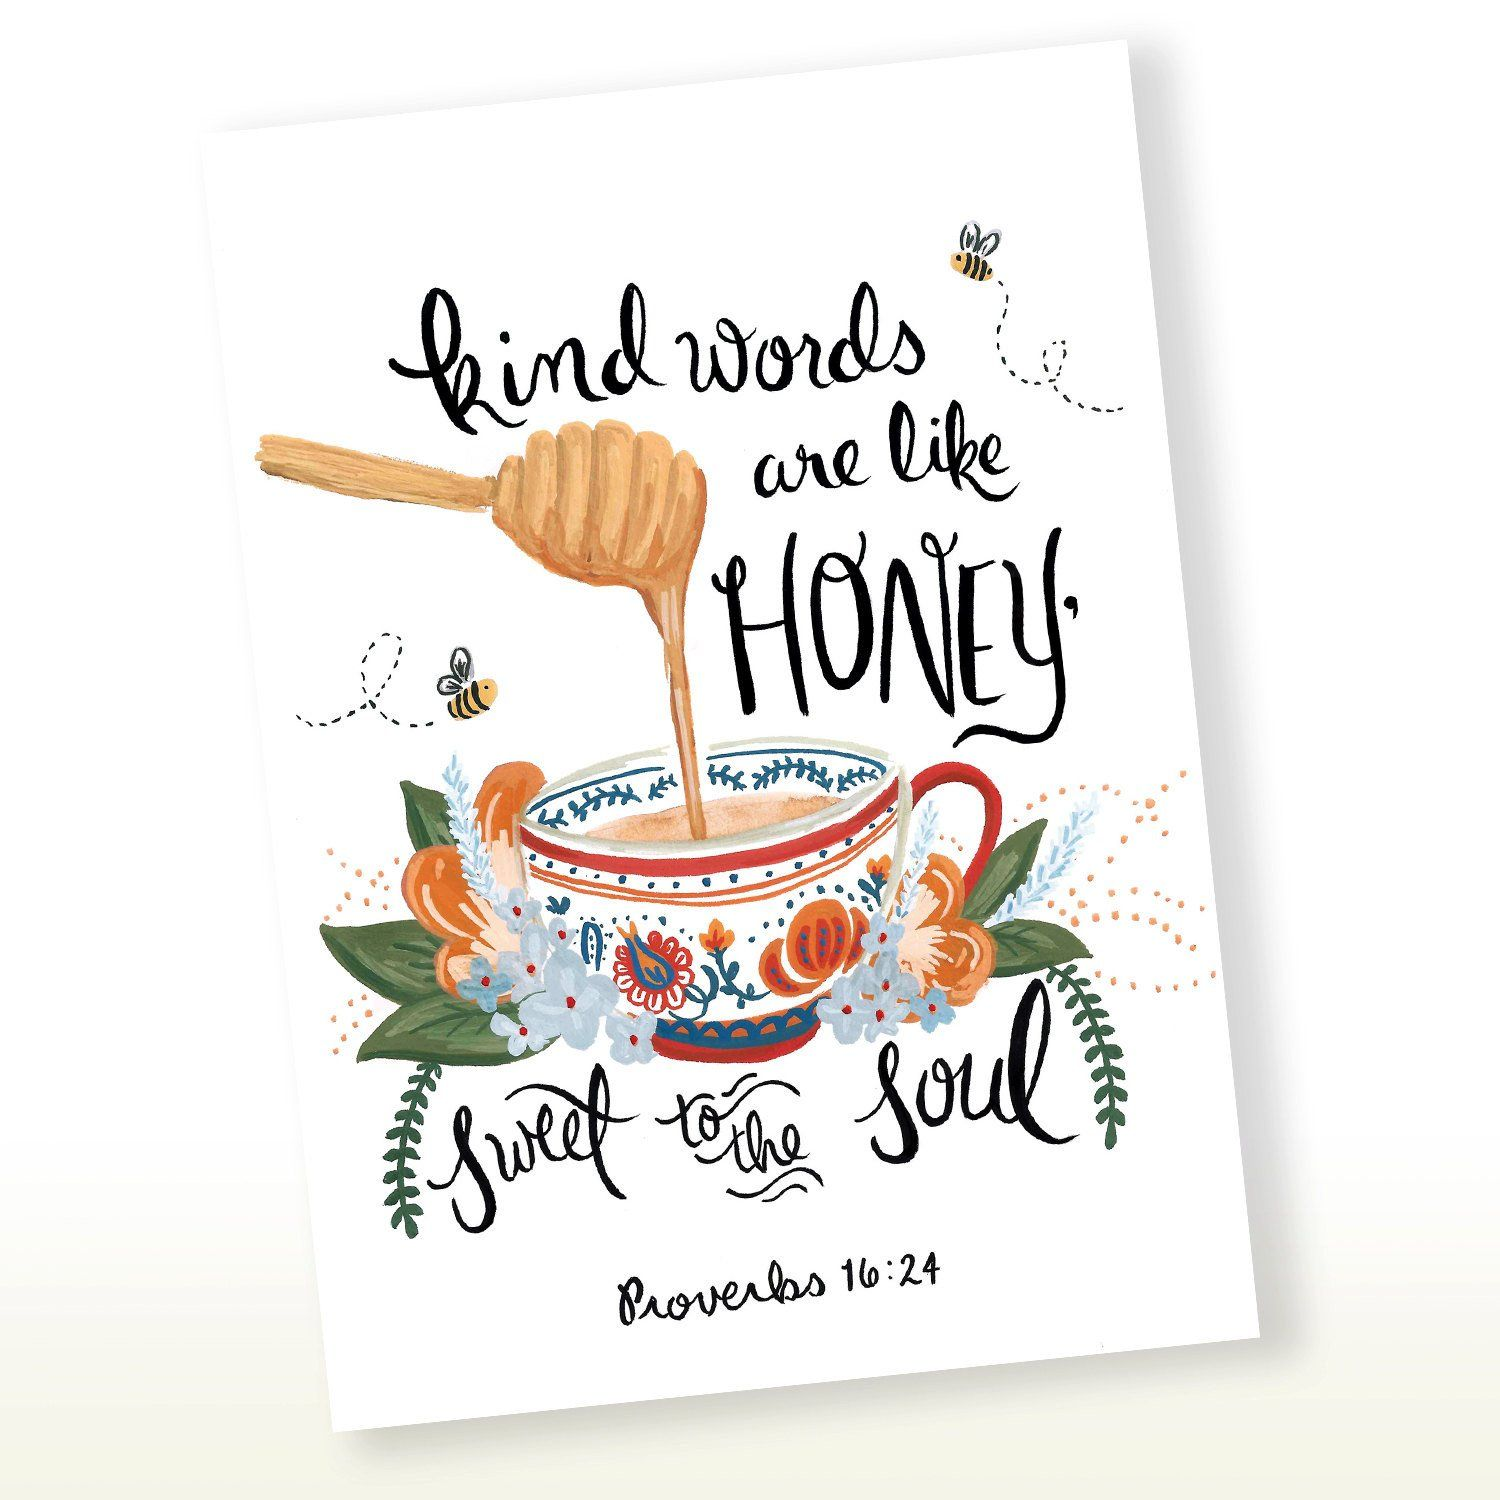 Kind Words Are Like Honey,Sweet to the Soul, Proverbs 16